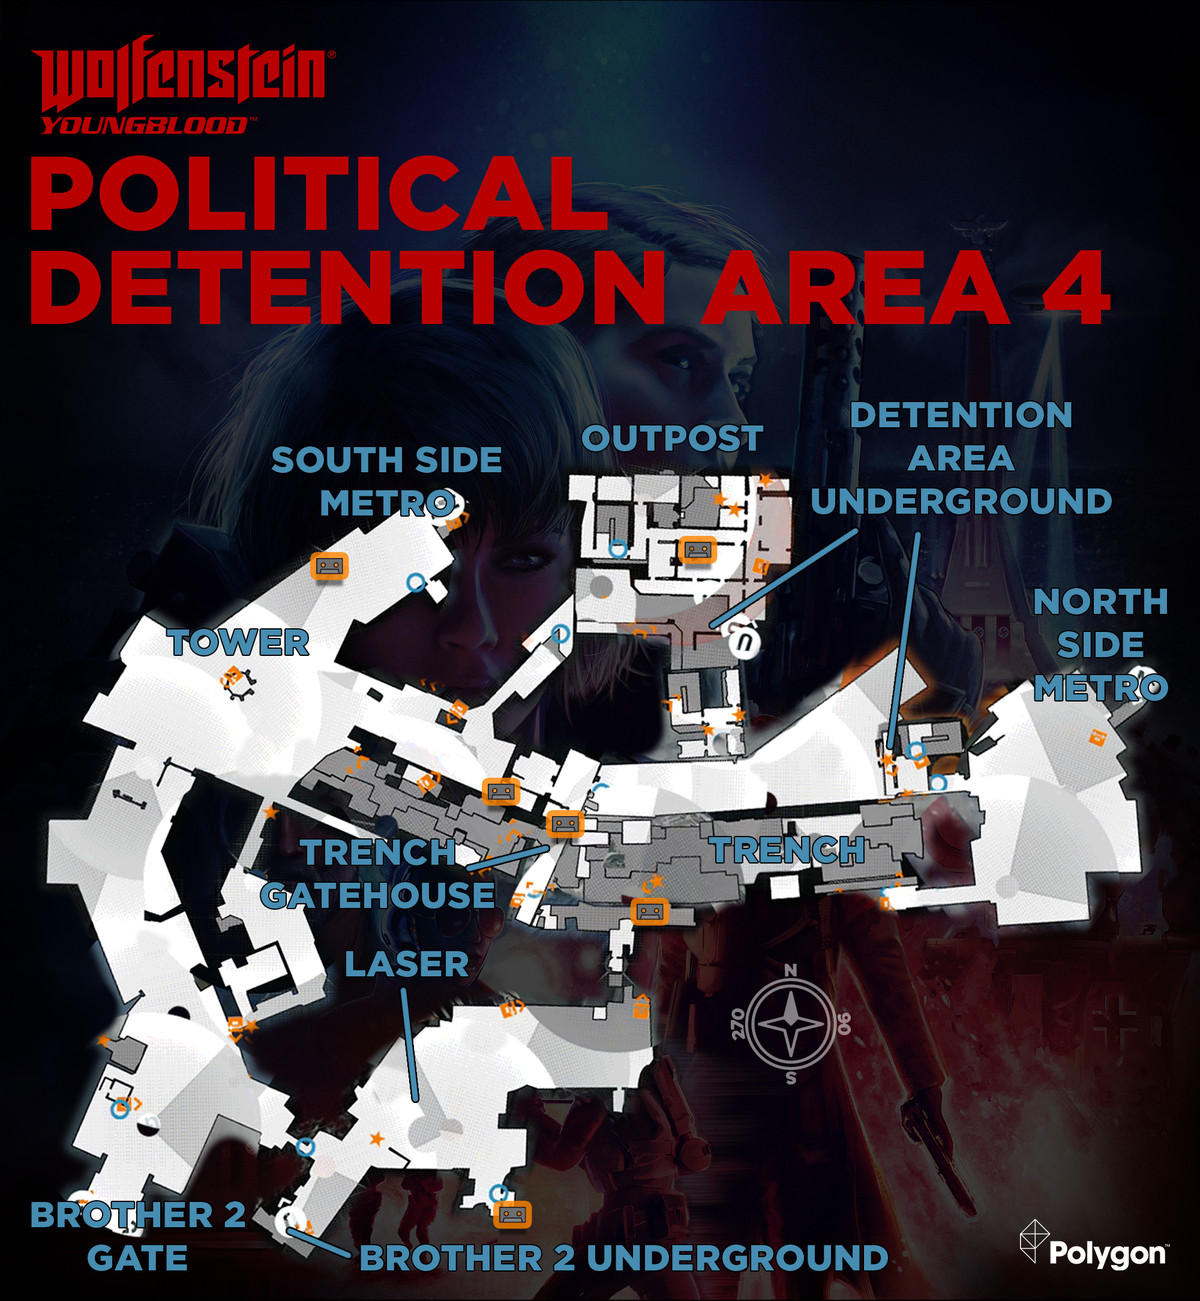 Wolfenstein: Youngblood Political Detention Area 4 map with Cassette Tape locations